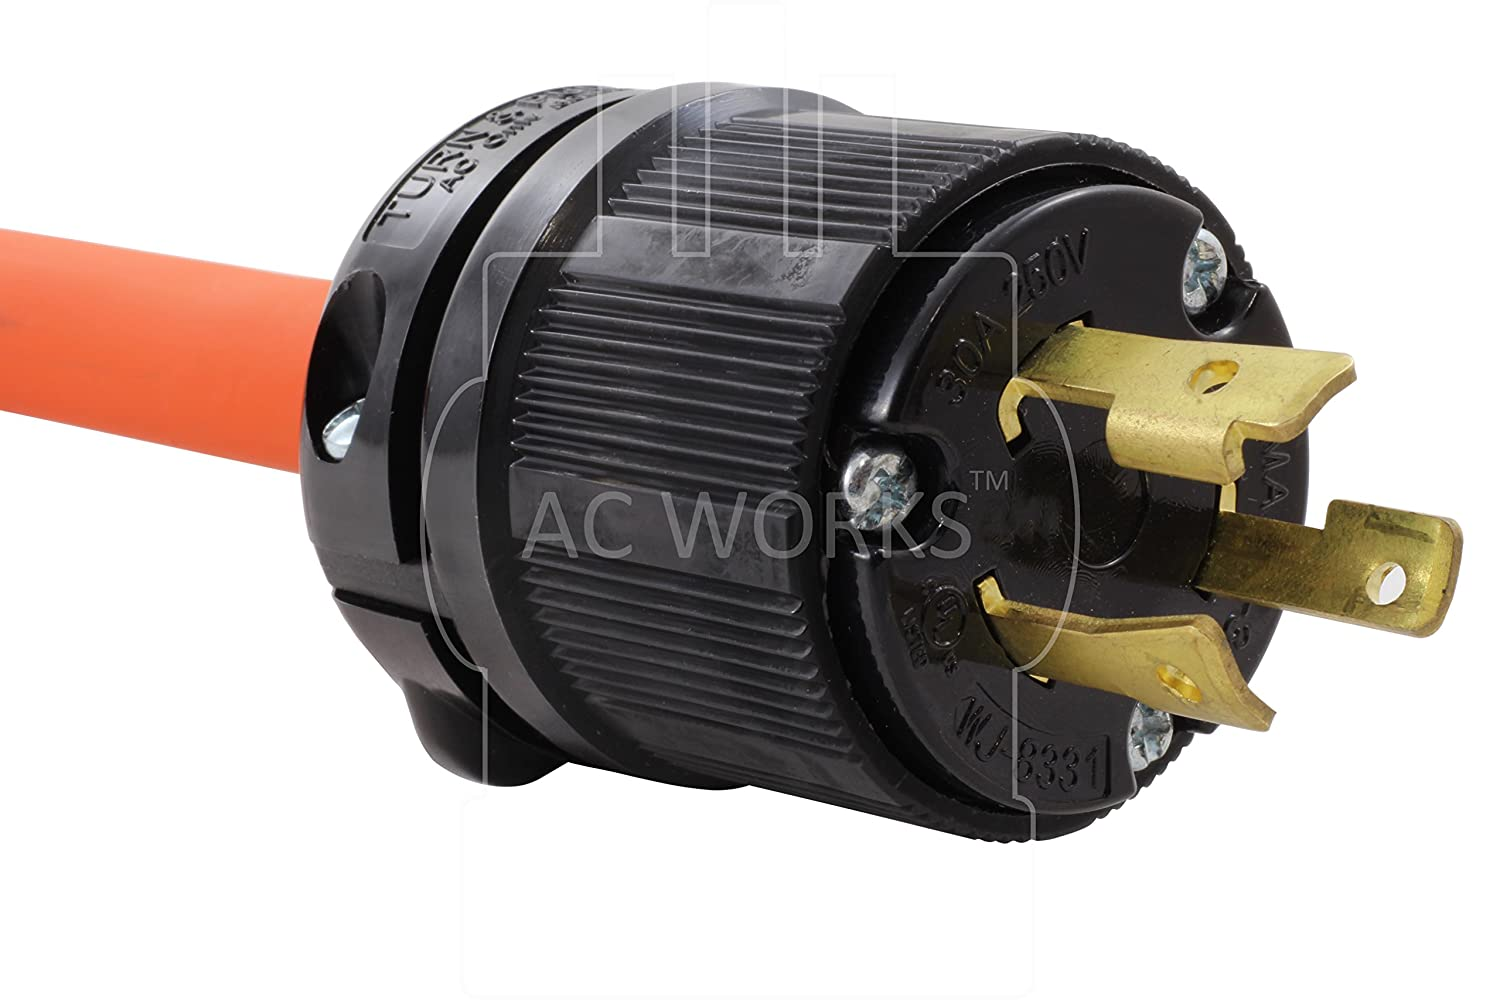 Ac Works 6 50 Welder Adapter L6 30 30a 250v 3 Prong Locking To Details Of Nema L1430p 615 20r Plug 1 Foot 20a